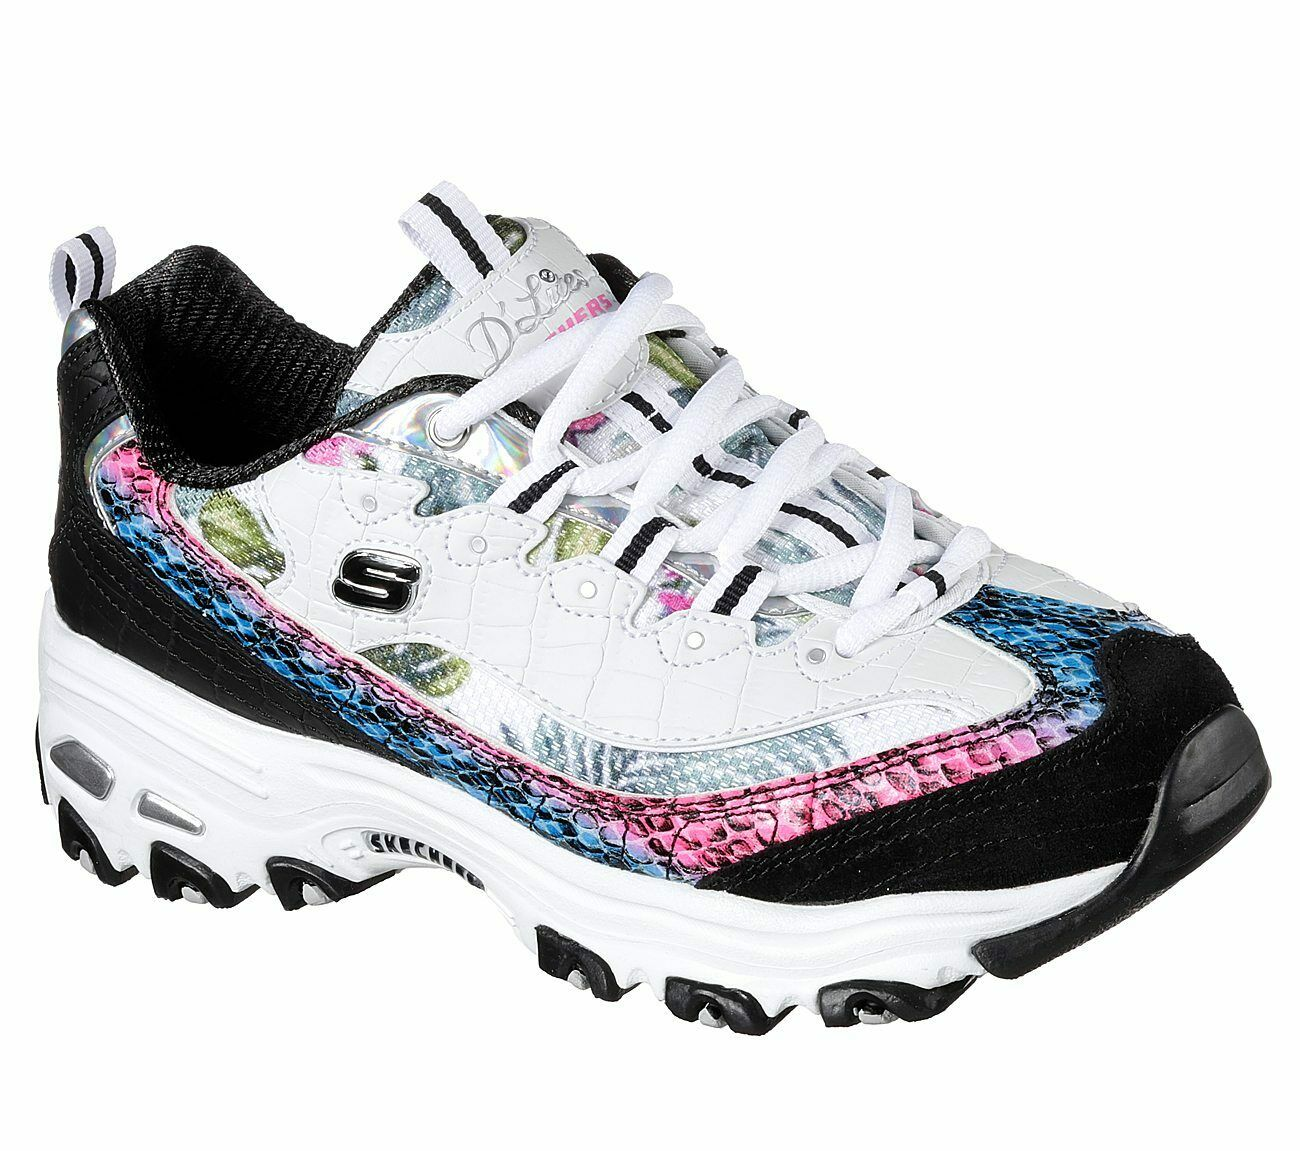 Skechers Skech-air Infinity Stand out